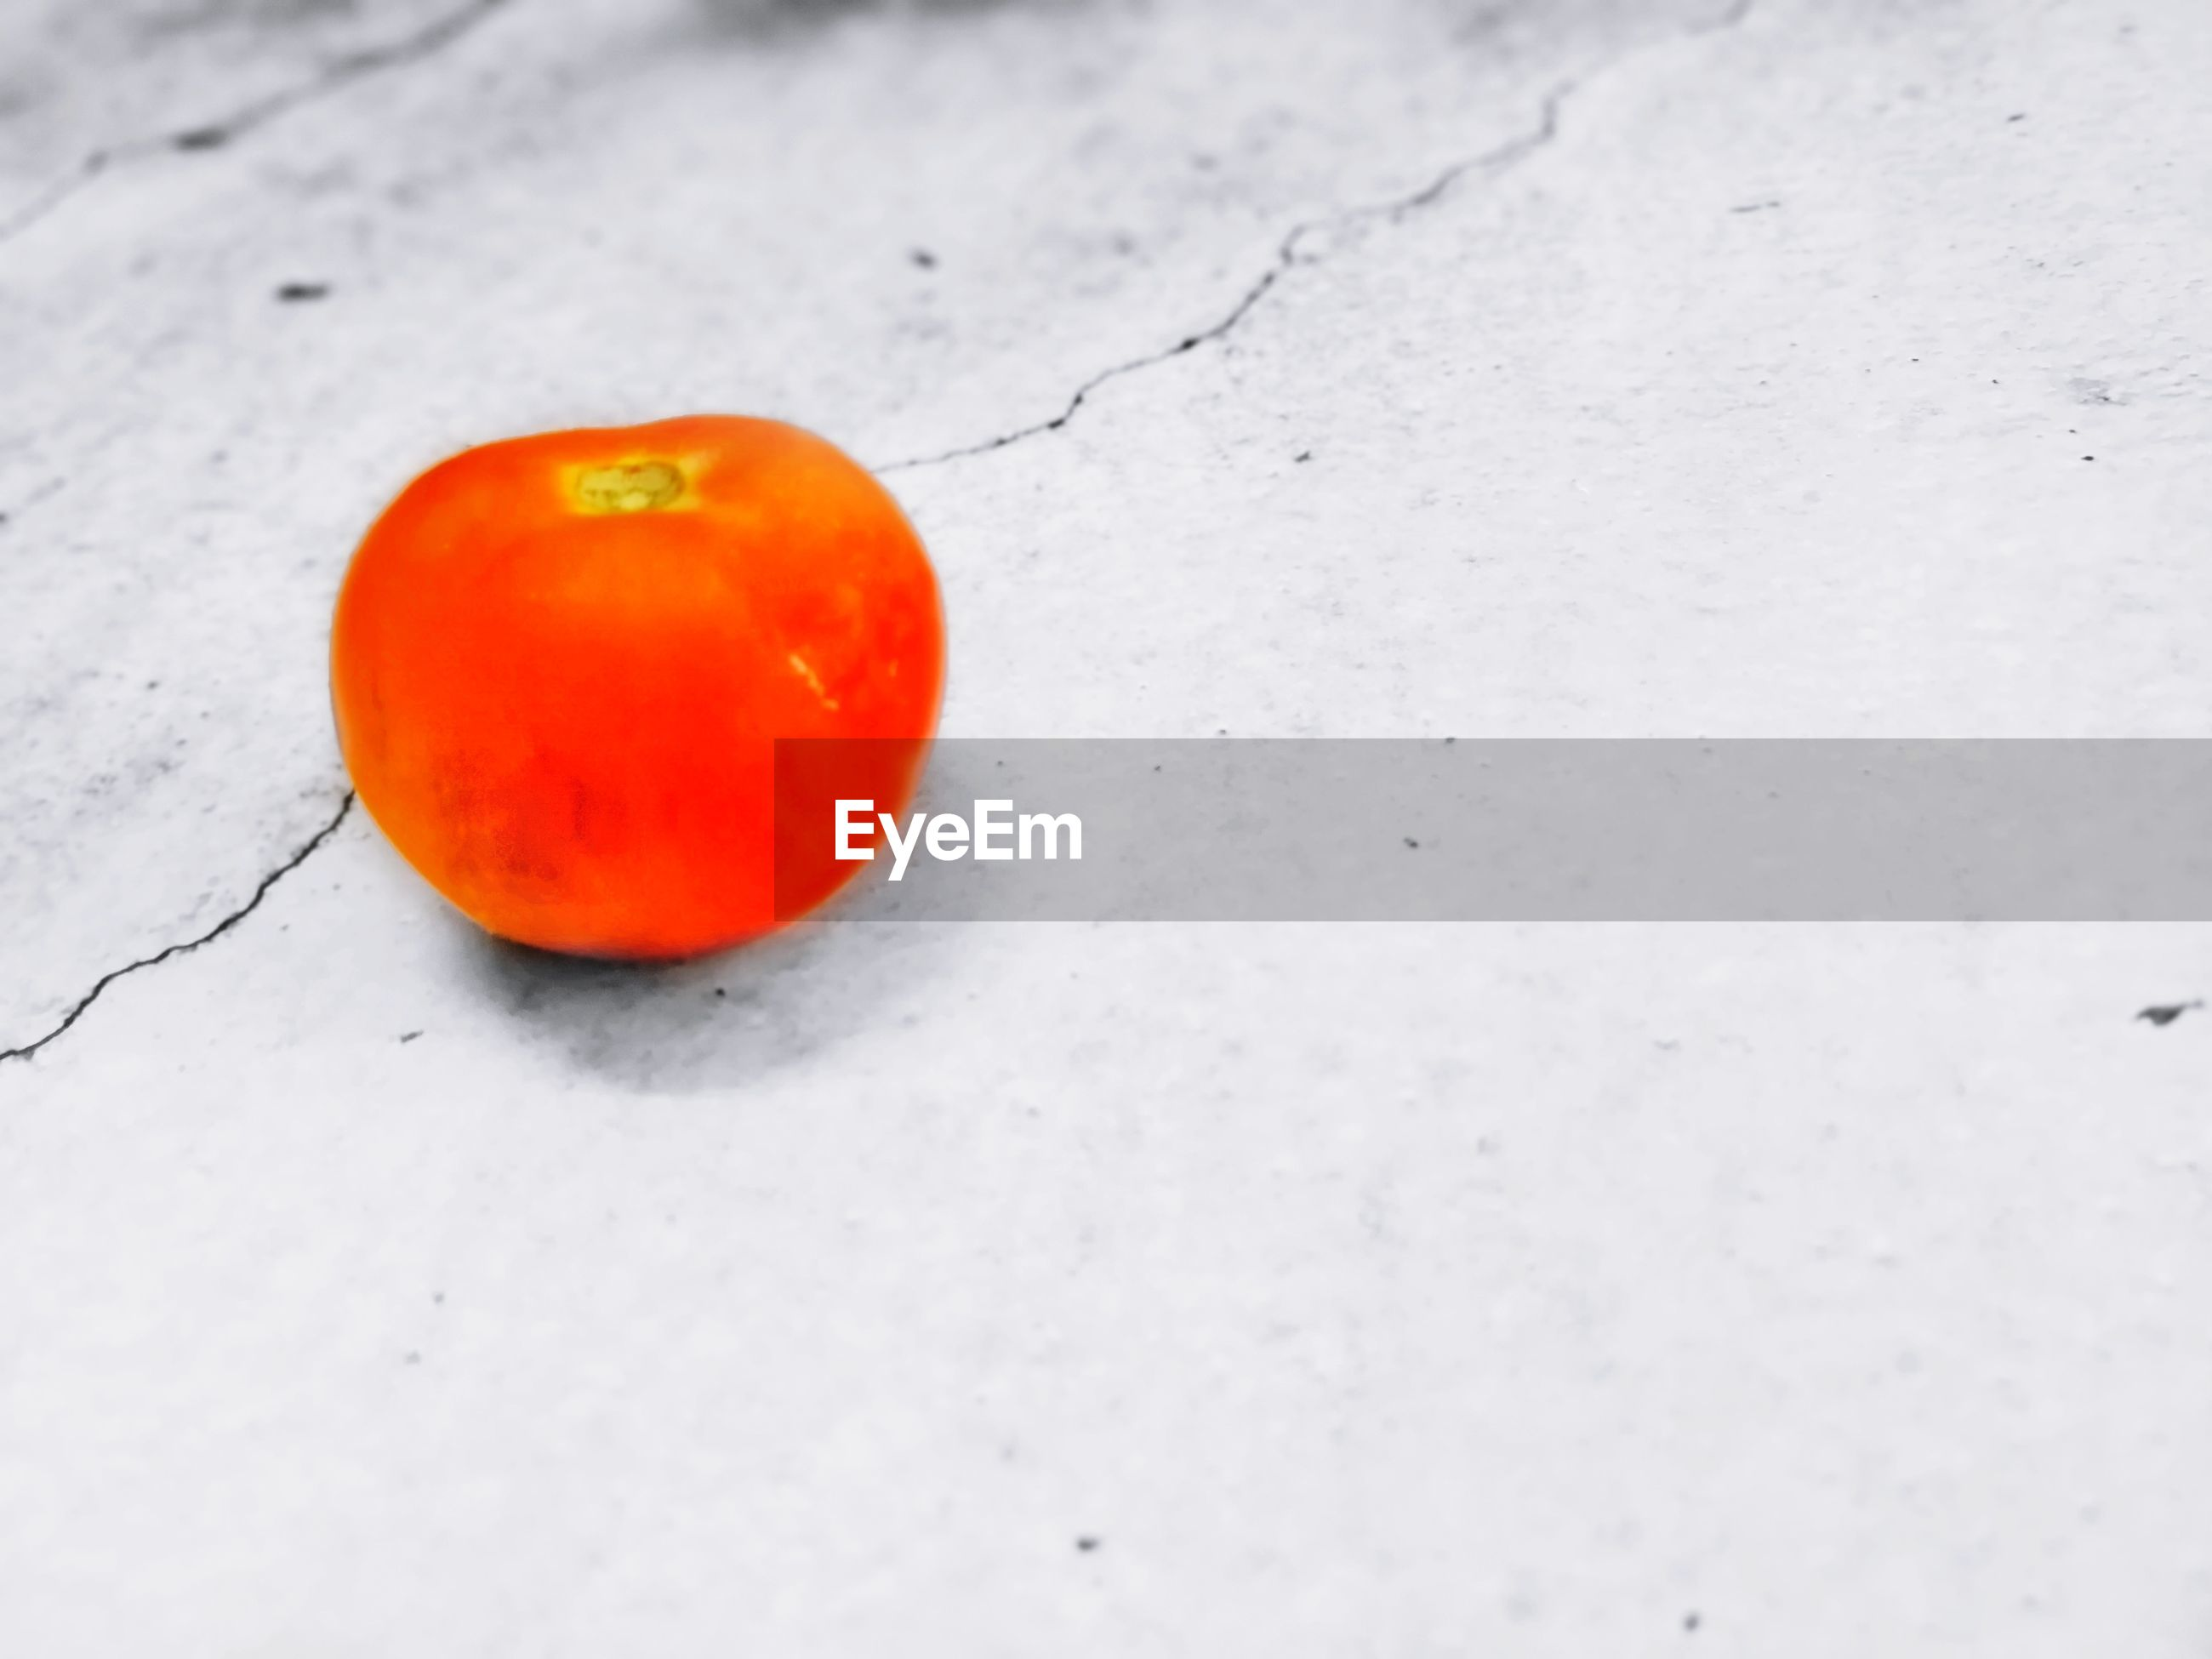 HIGH ANGLE VIEW OF ORANGE FRUIT ON SNOW COVERED